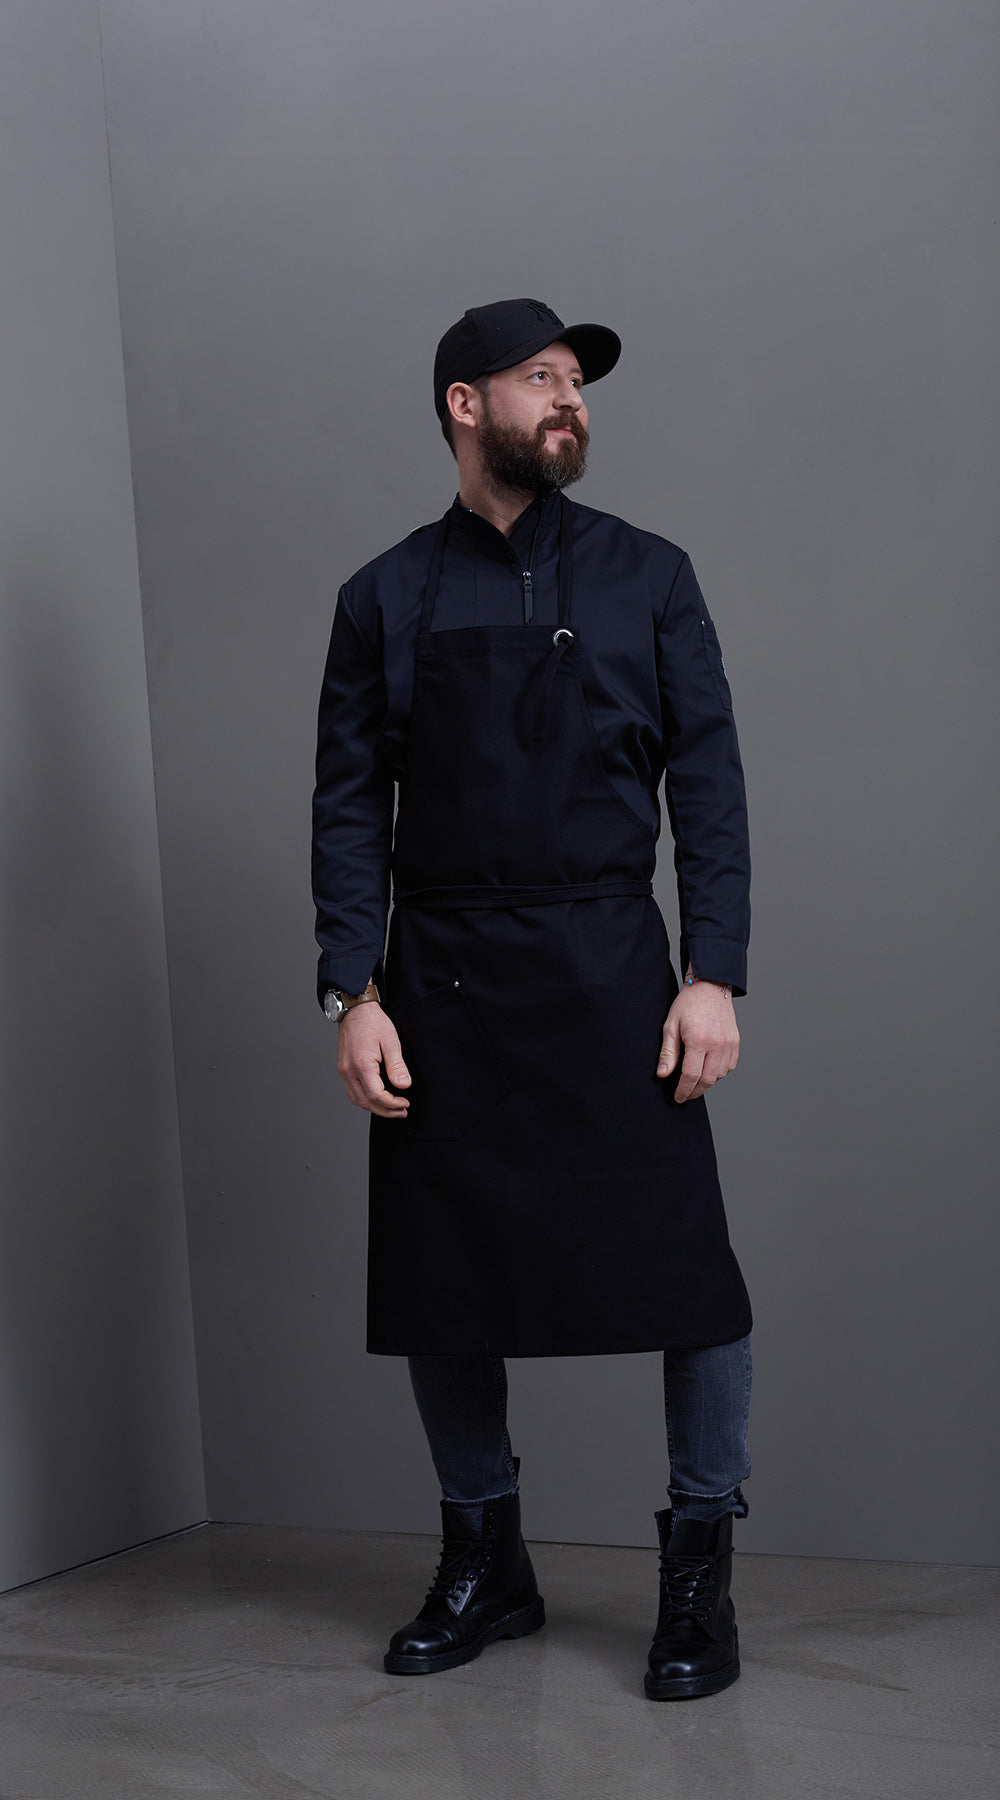 trauth jacket LONDON - trauth design gastrowear